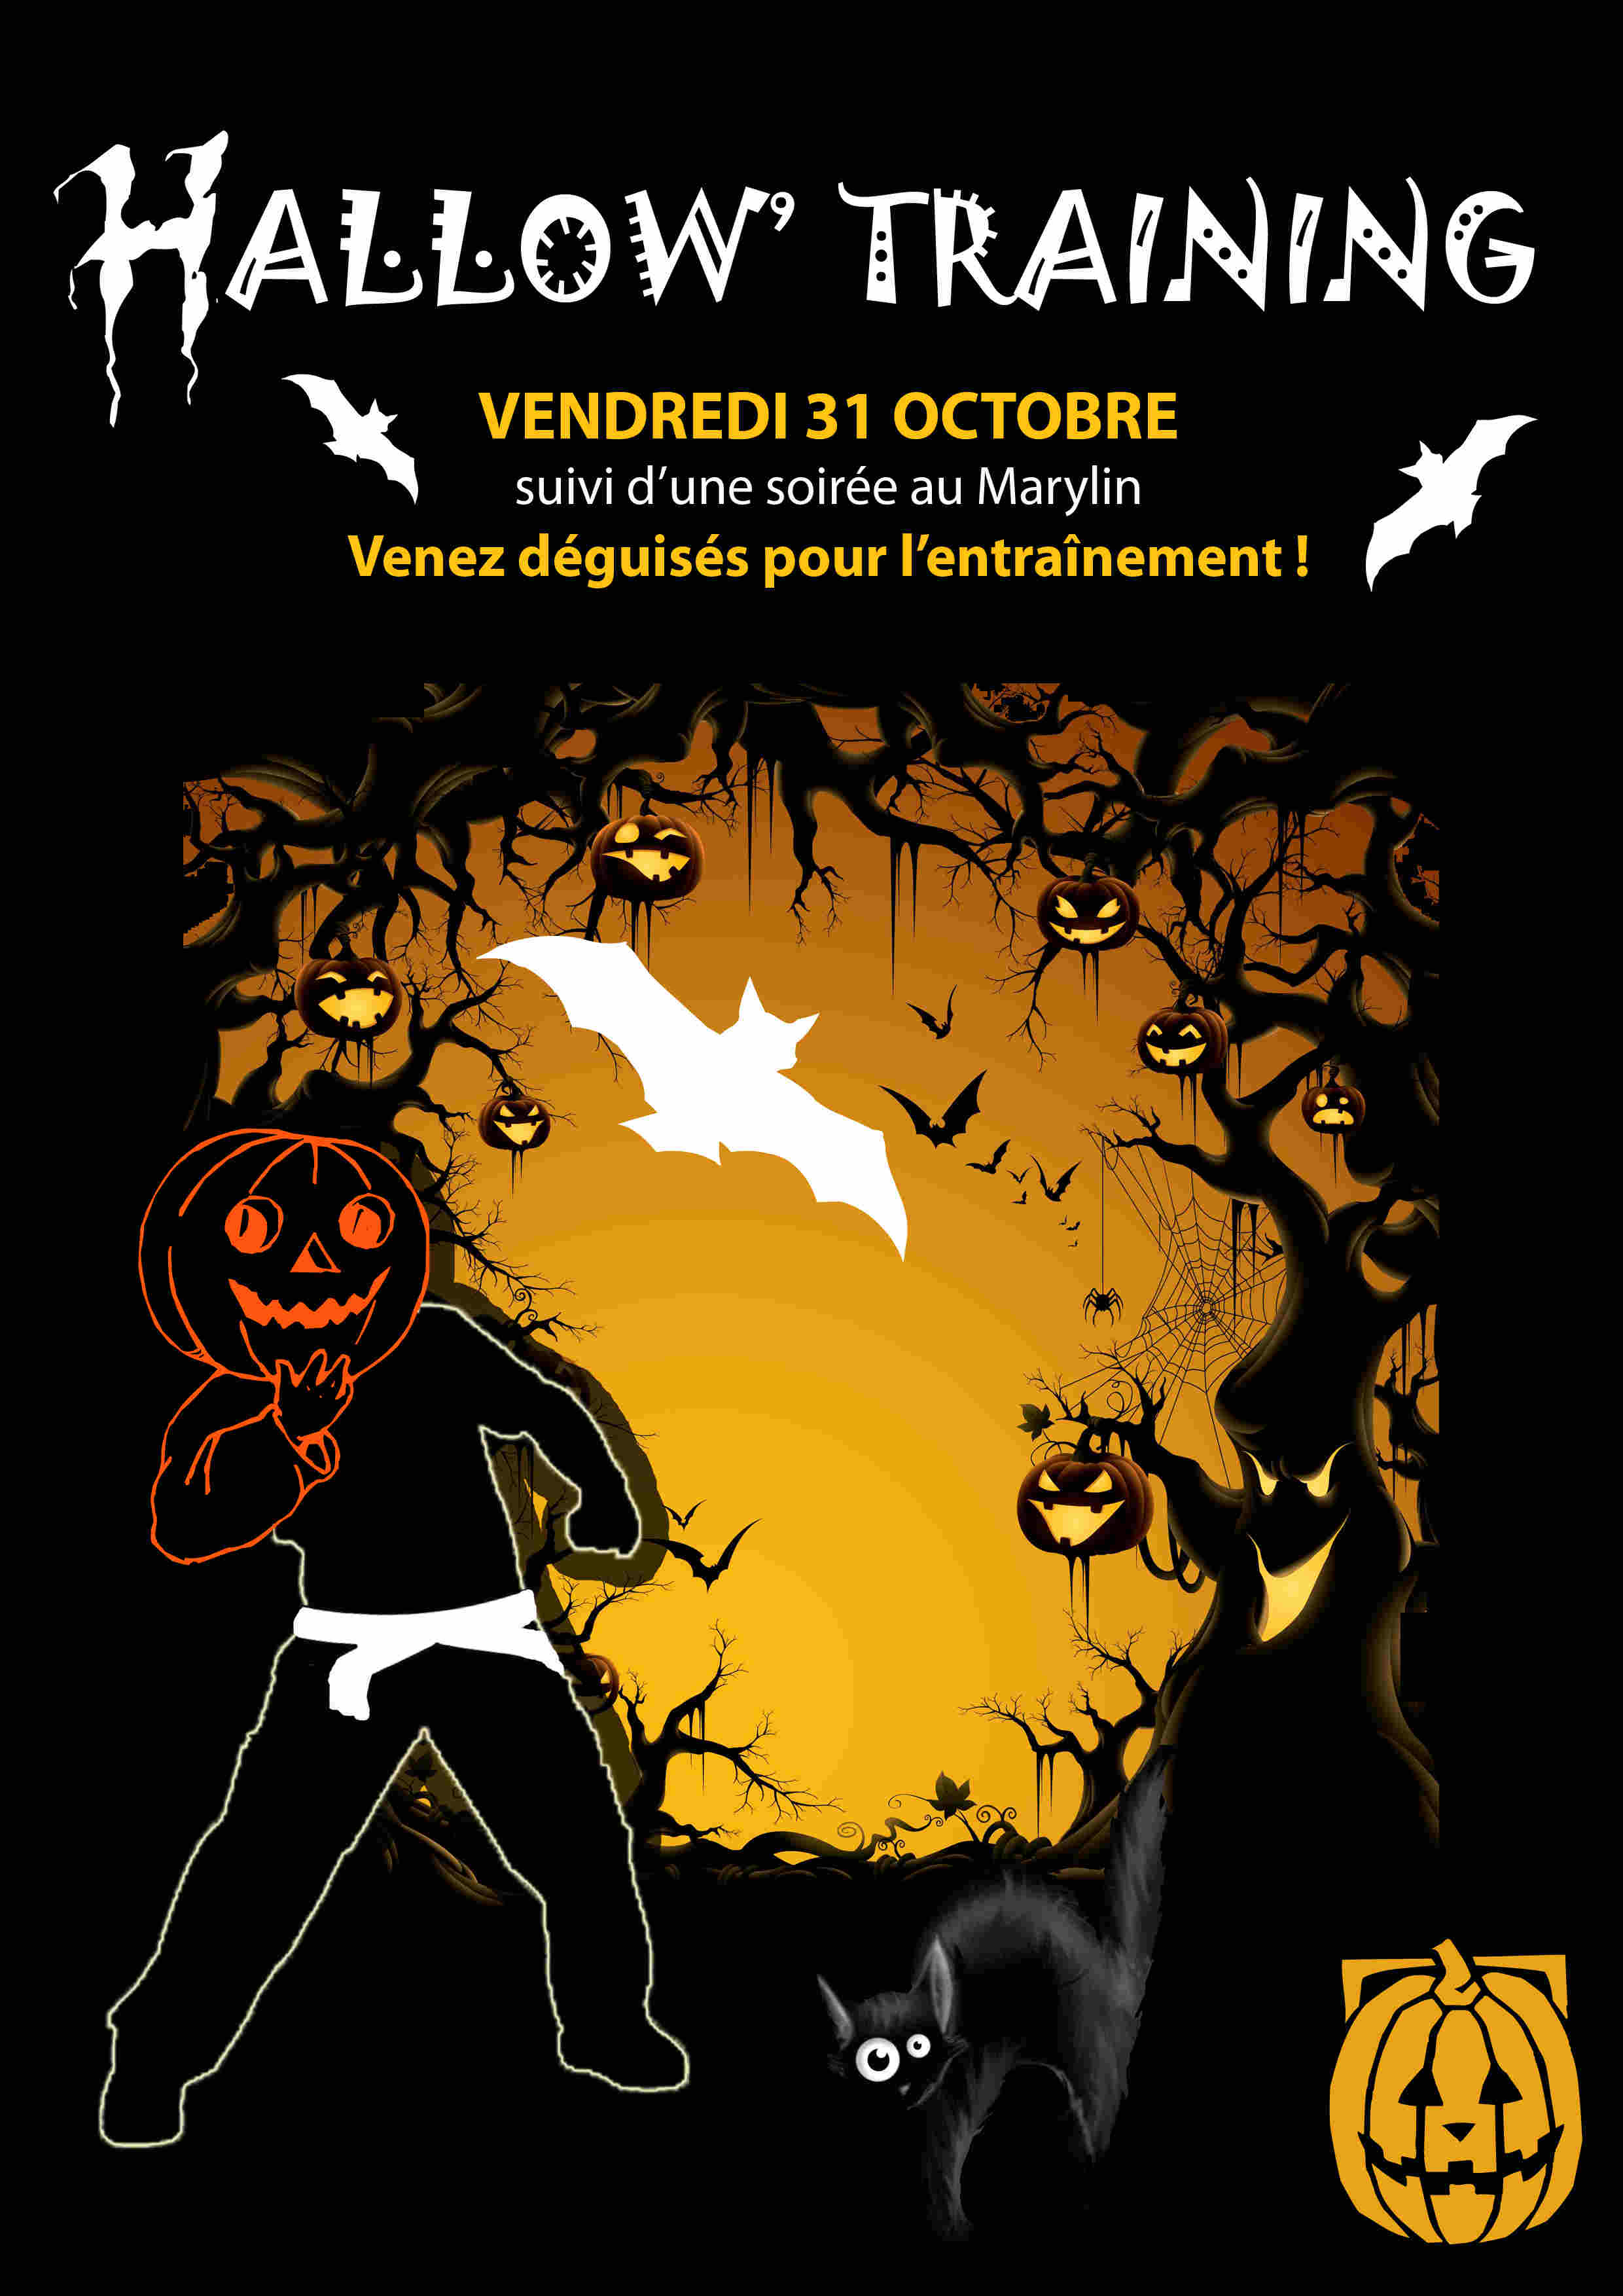 Hallow' Training le 31 Octobre 2014